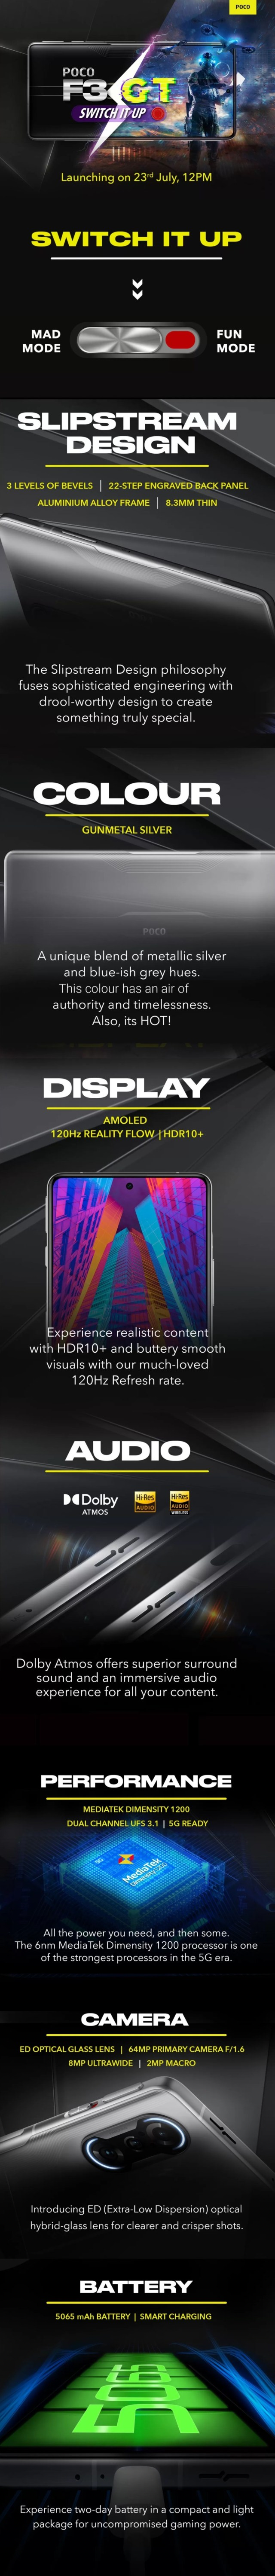 Poco F3 GT gets landing page on Flipkart that covers all the K40 Gaming Edition derived features